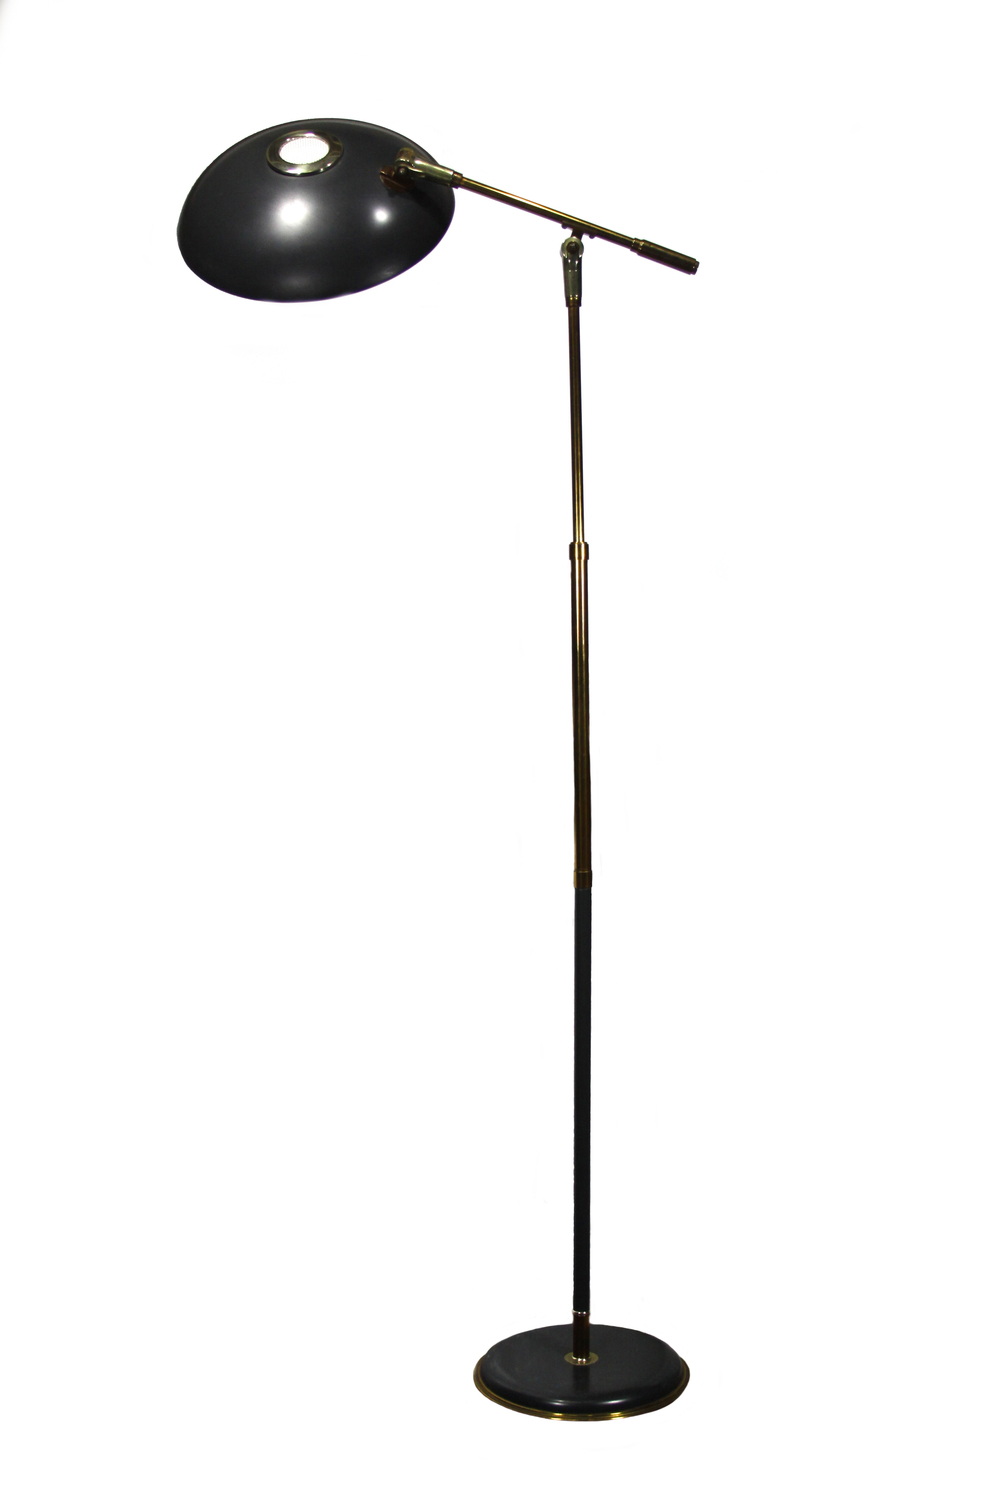 Sold lightolier floor lamp designed by gerald thurston phat dog lightolier floor lamp designed by gerald thurston phat dog vintage geotapseo Image collections